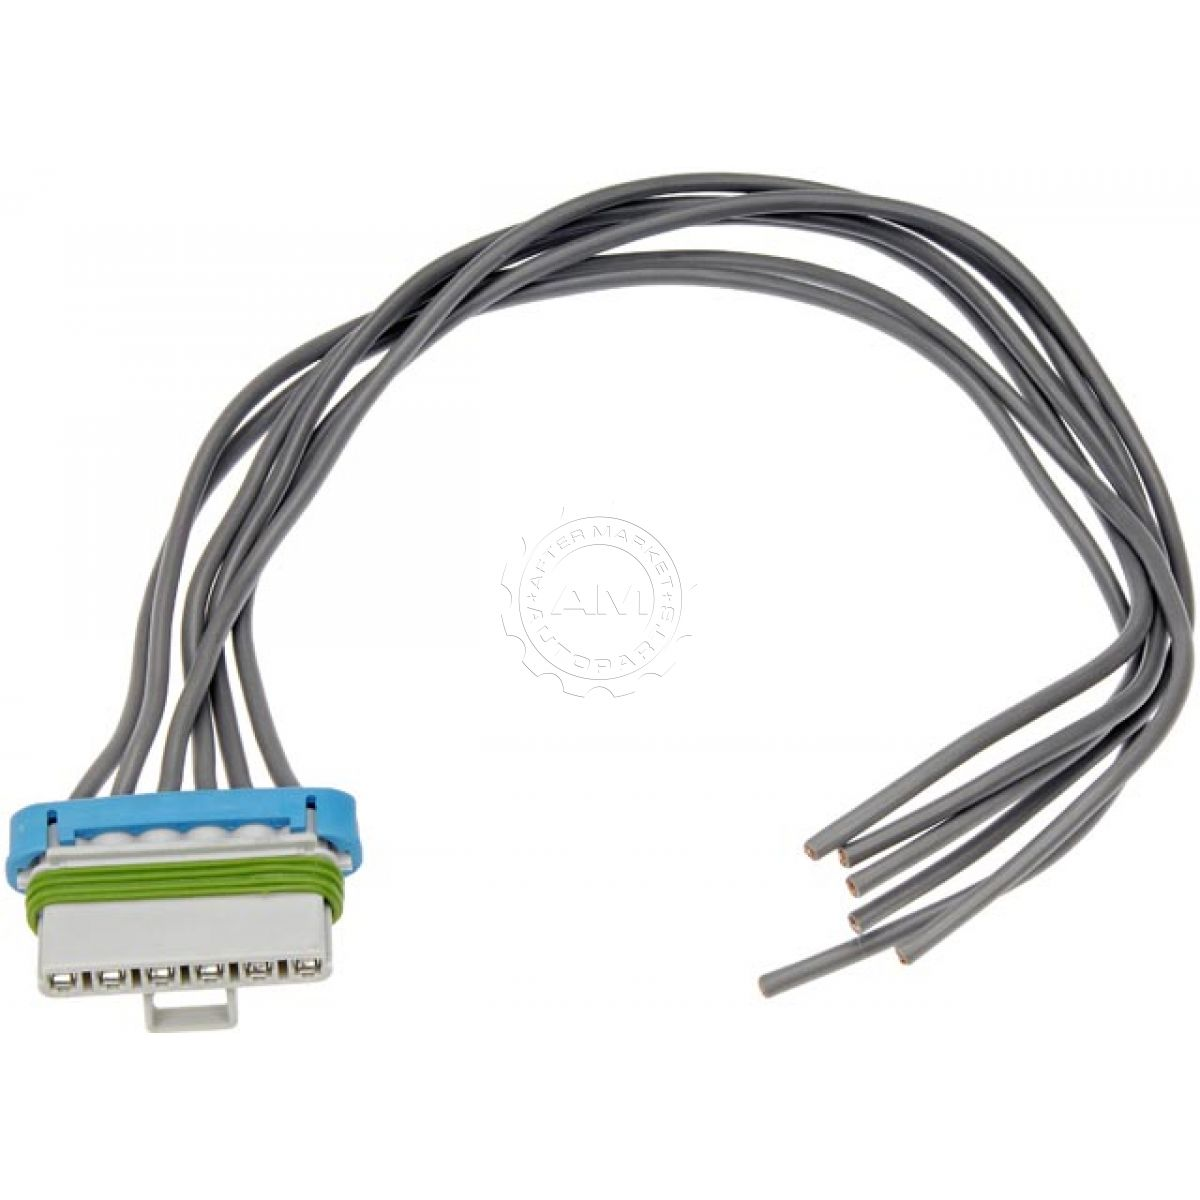 Details about Dorman 645-542 Blower Resistor Wiring Harness Plug Pigtail  for Buick Chevy GMC